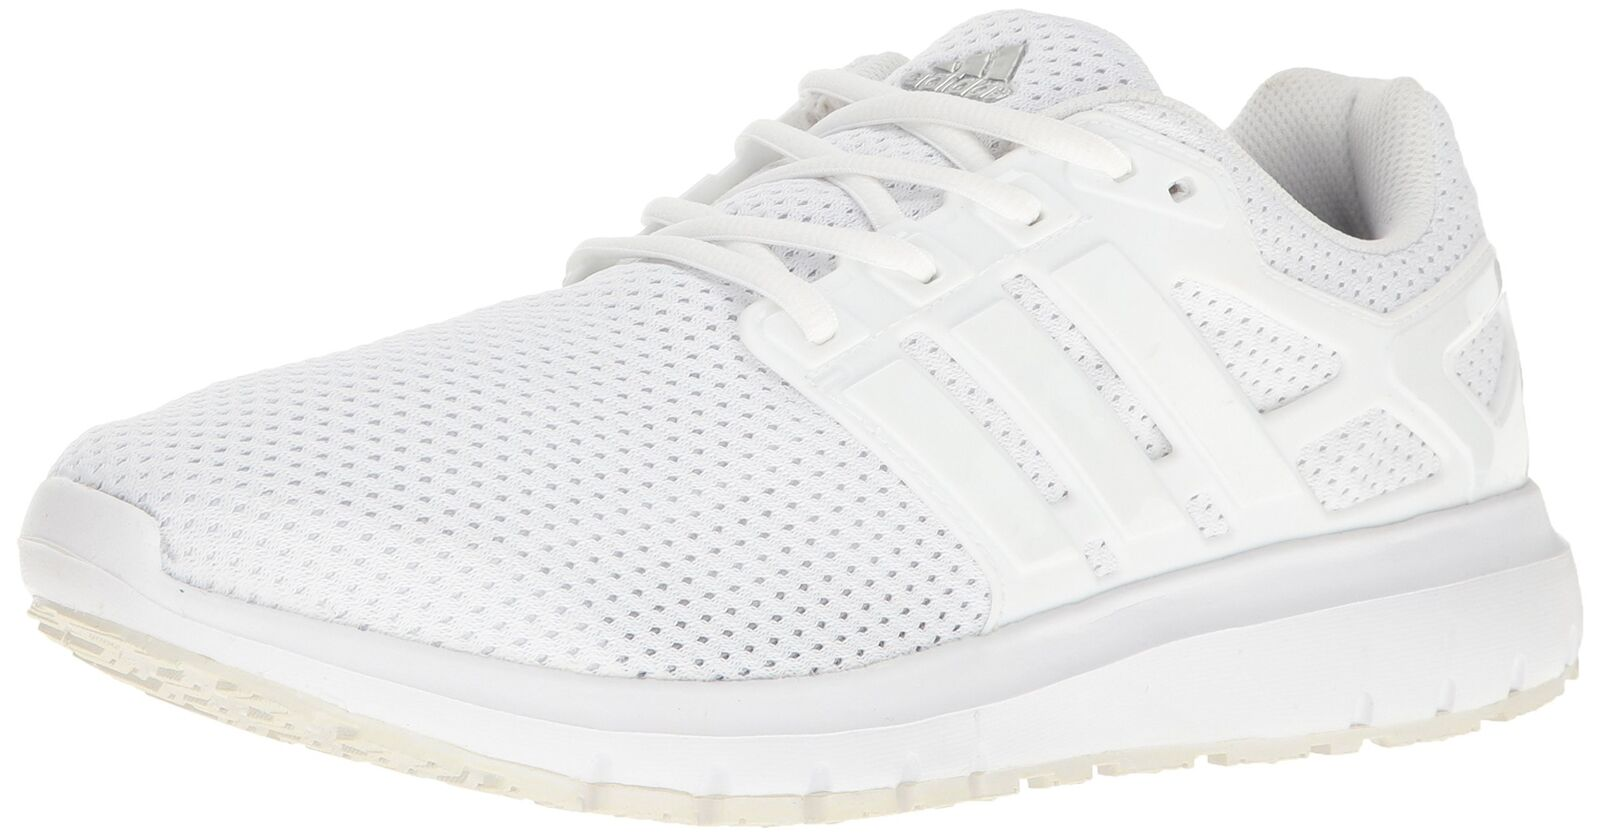 Adidas Men's Energy Cloud Wtc m Running shoes White White White 9.5 D(M) US New